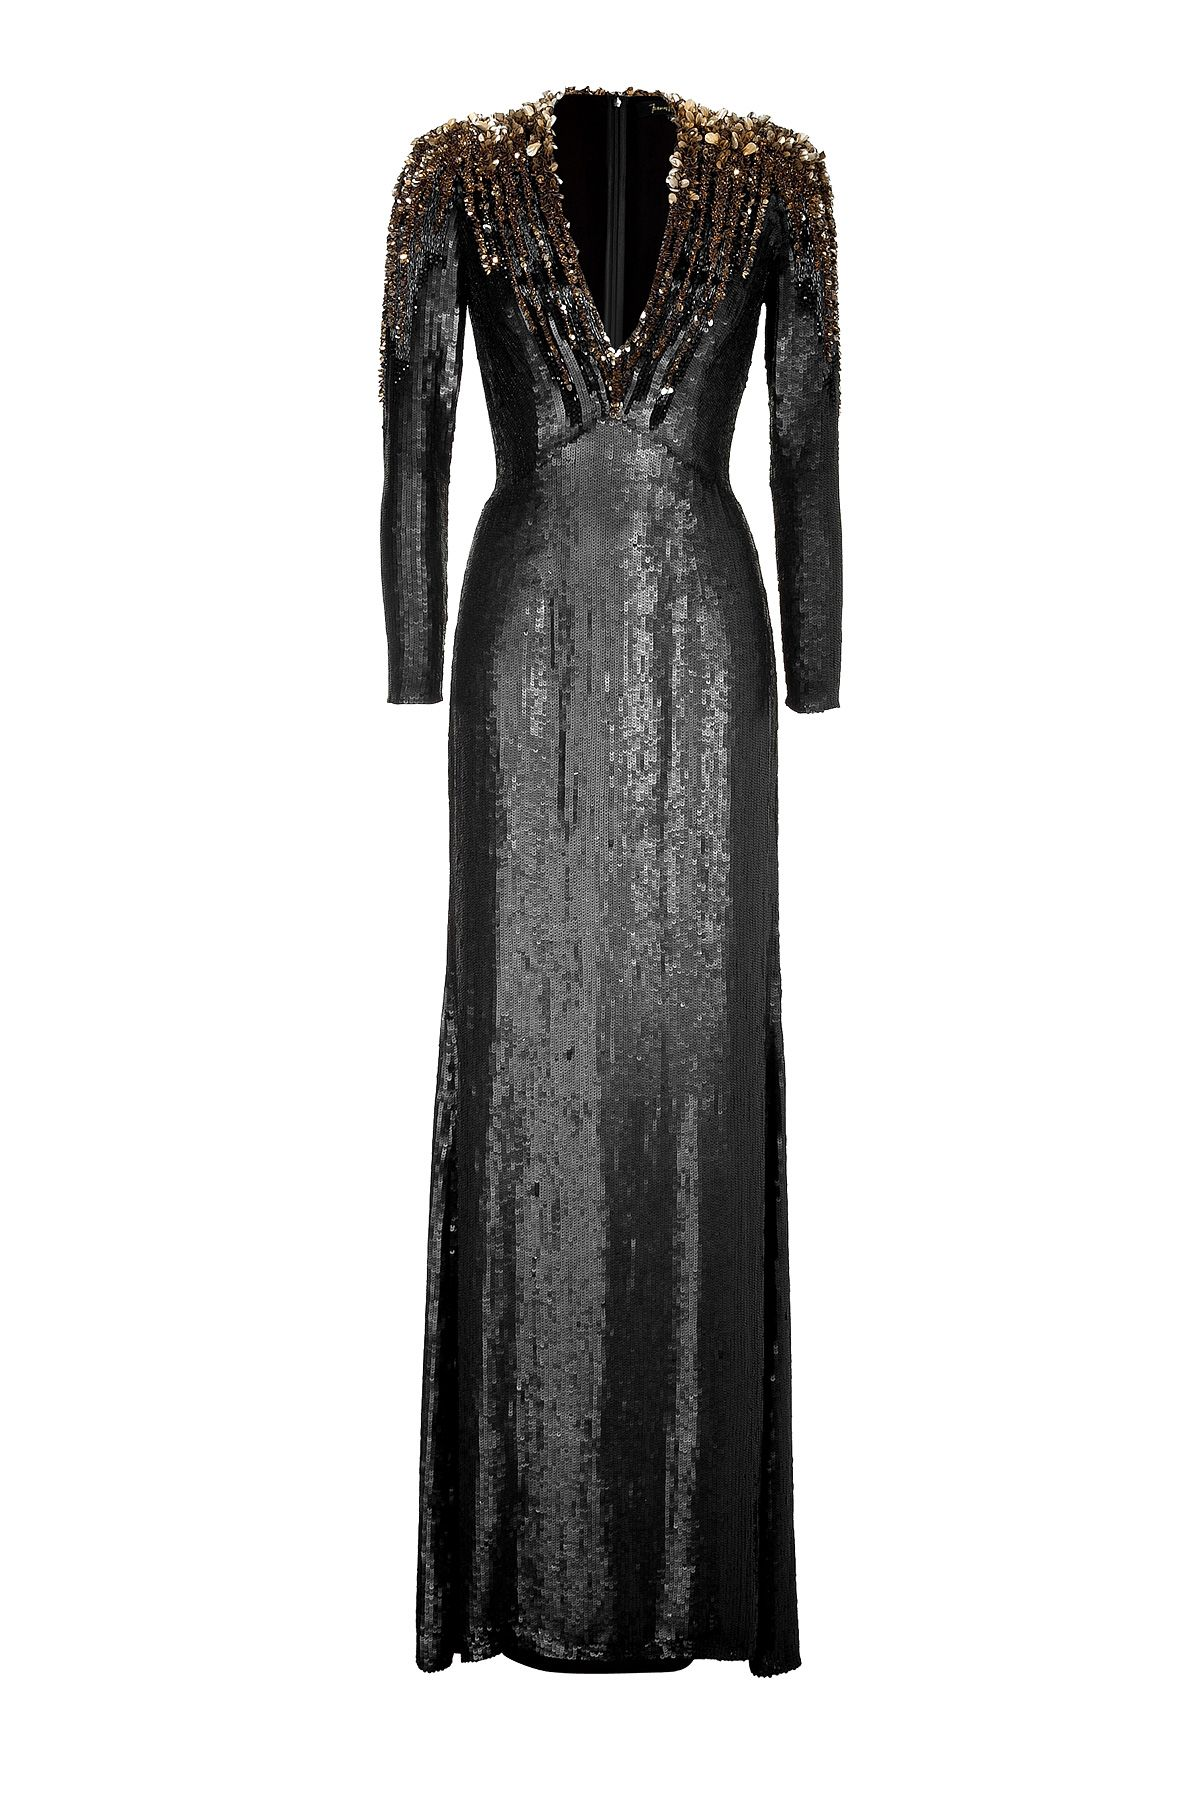 6265c5c070 Black Gold Sequined Silk Gown by JENNY PACKHAM